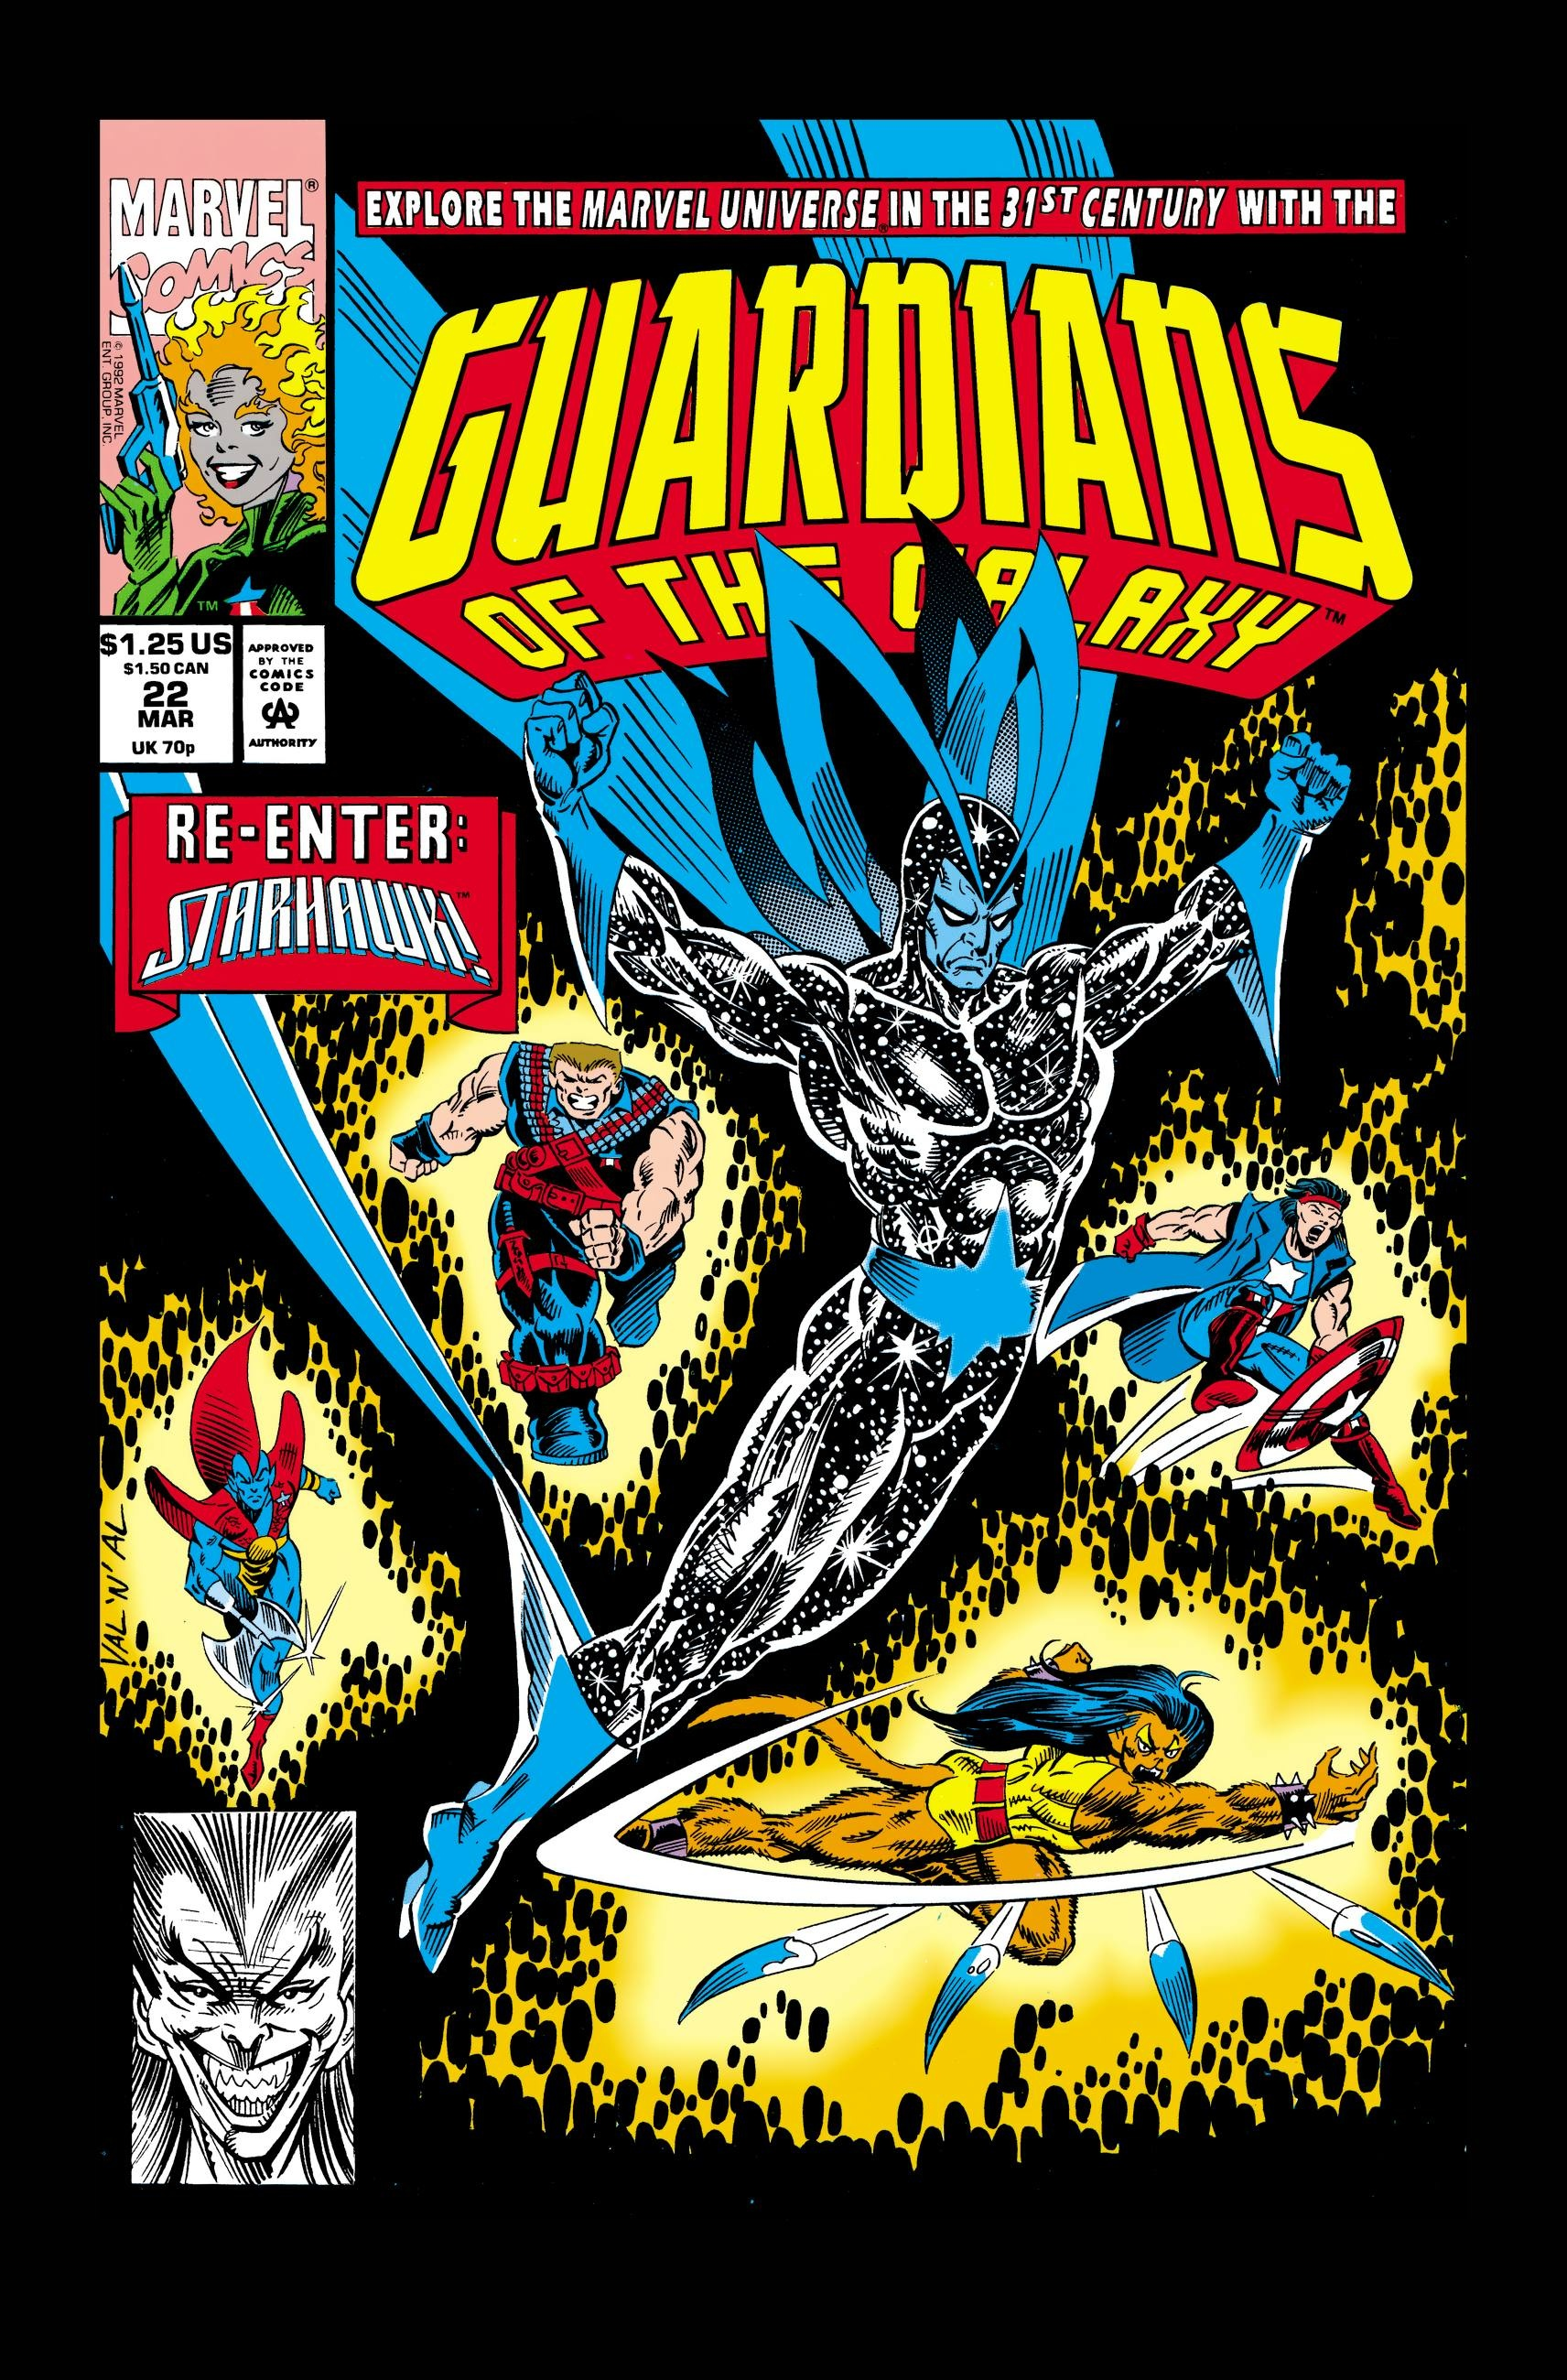 Guardians of the Galaxy by Jim Valentino Vol. 3 guardians of the galaxy volume 3 guardians disassembled